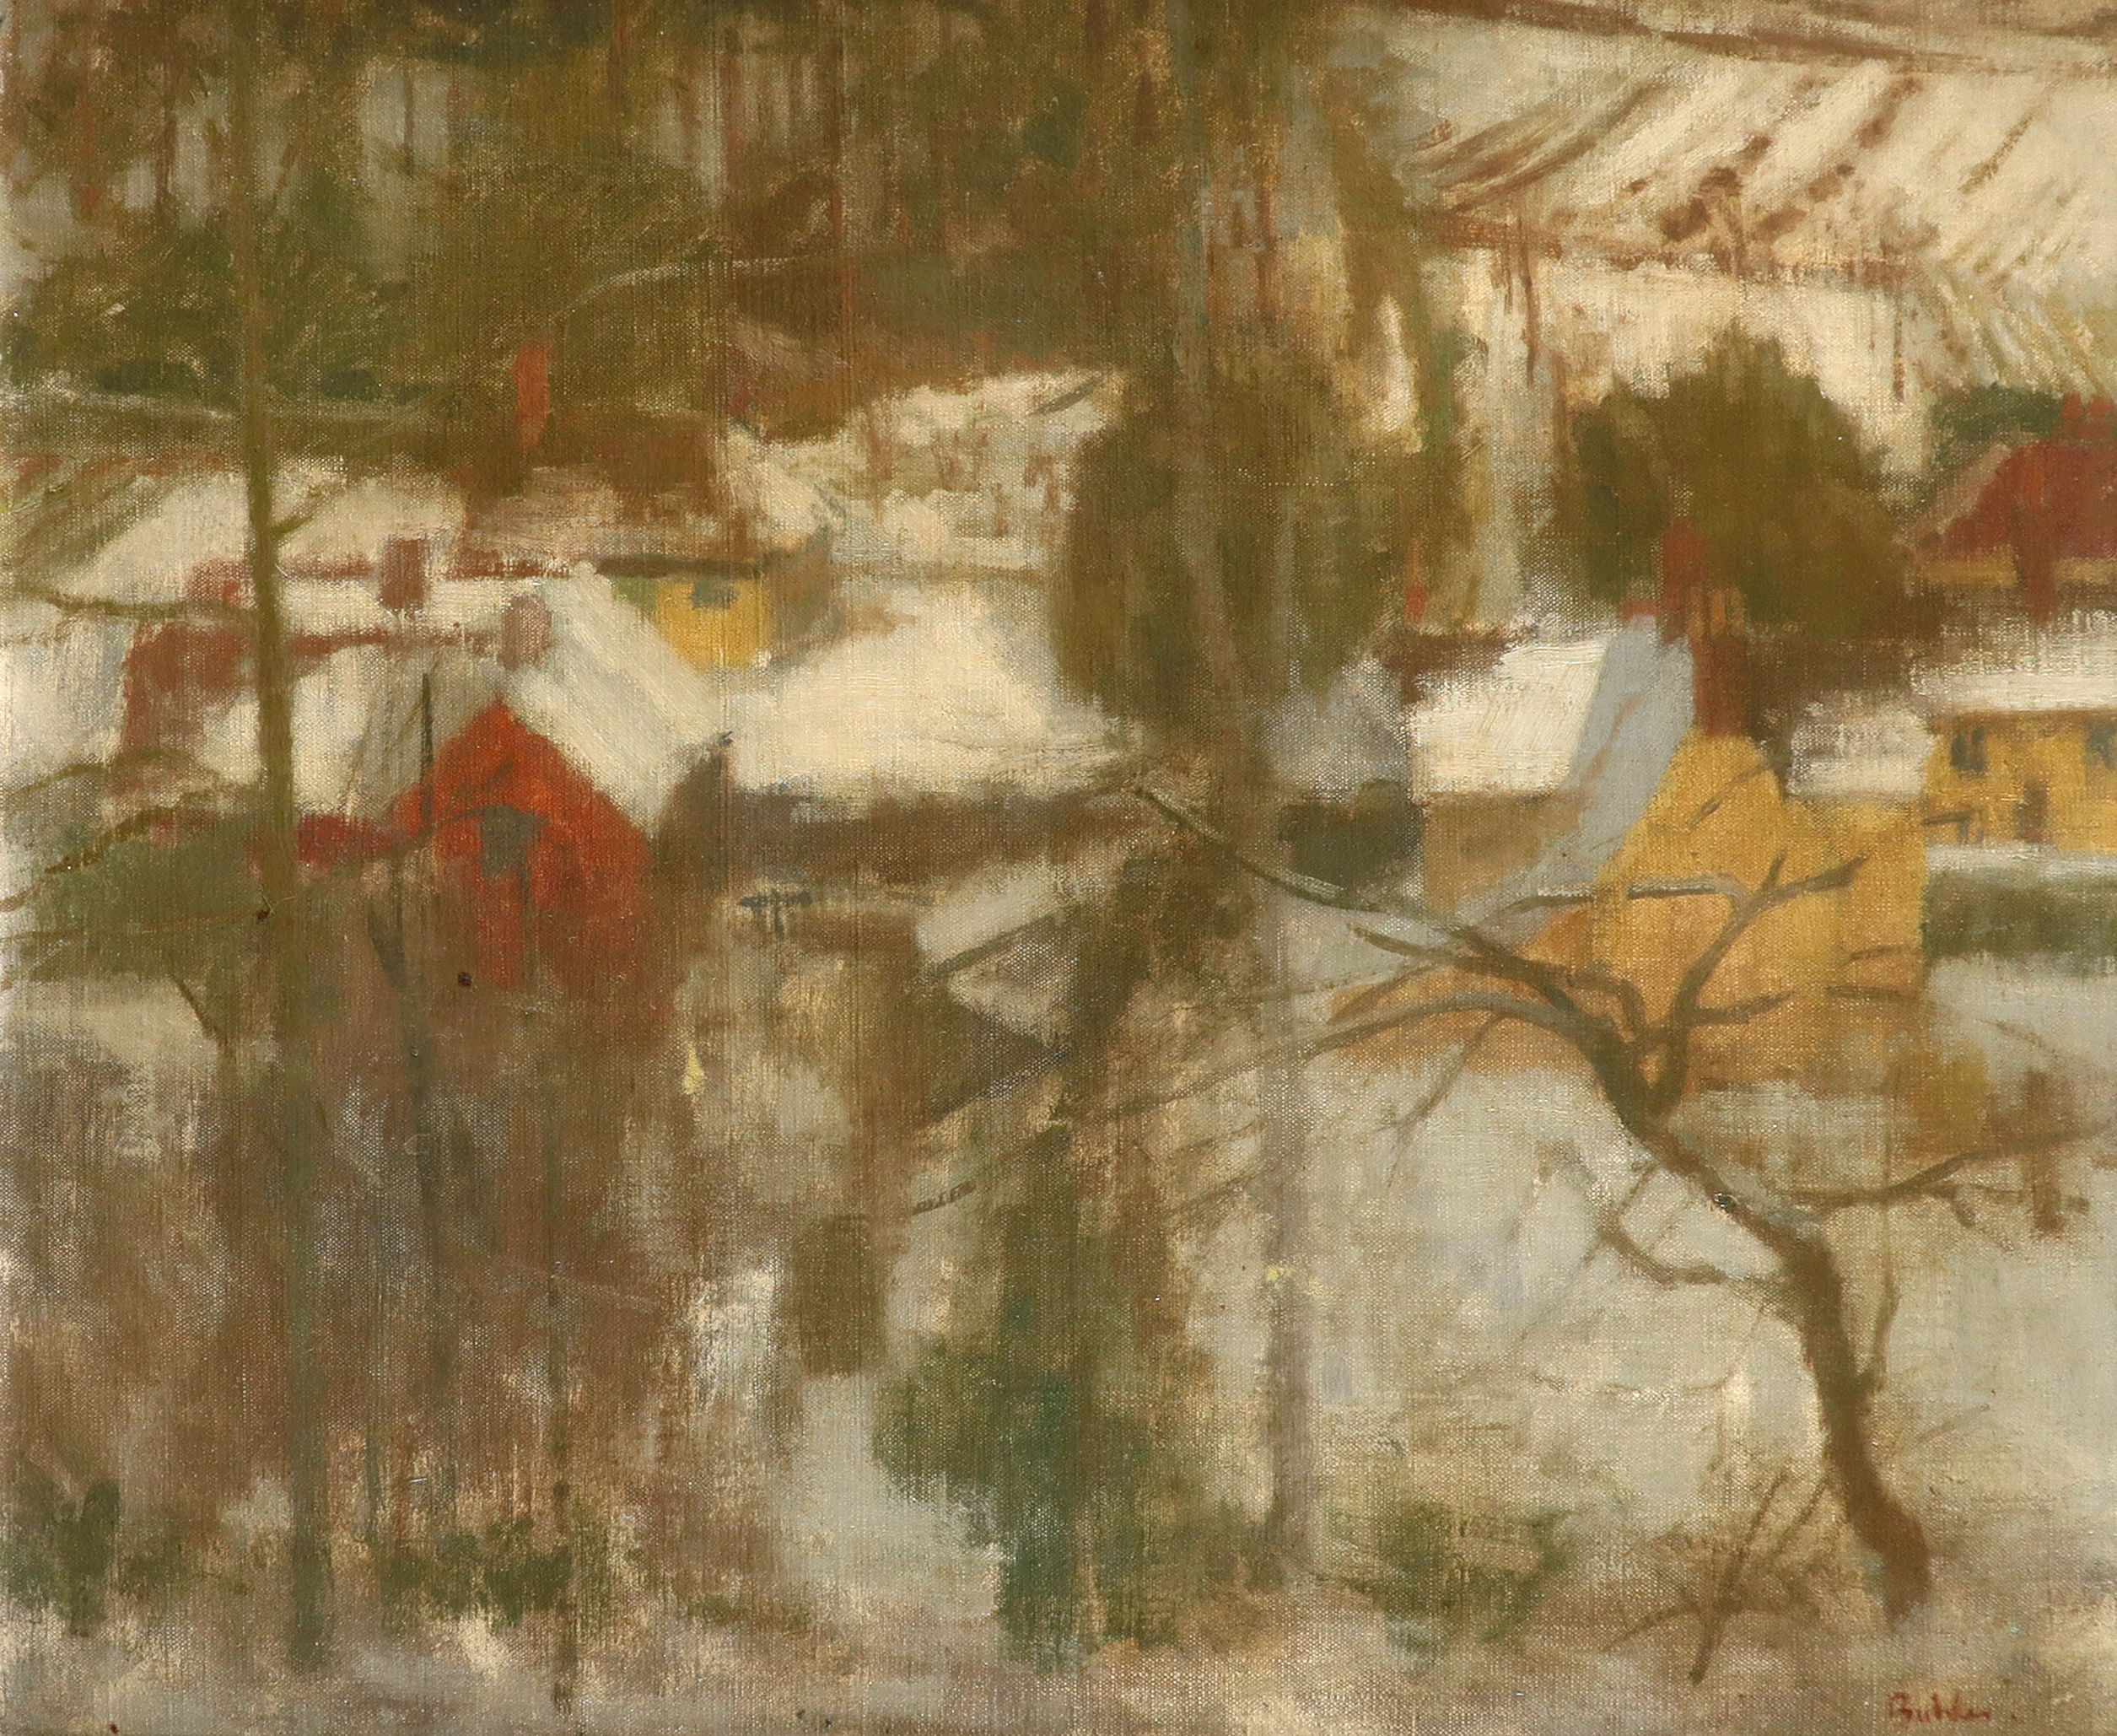 ‡Robert Buhler RA (1916-1989) Snow, Borden Wood Signed Buhler. (lower right) Oil on canvas laid down